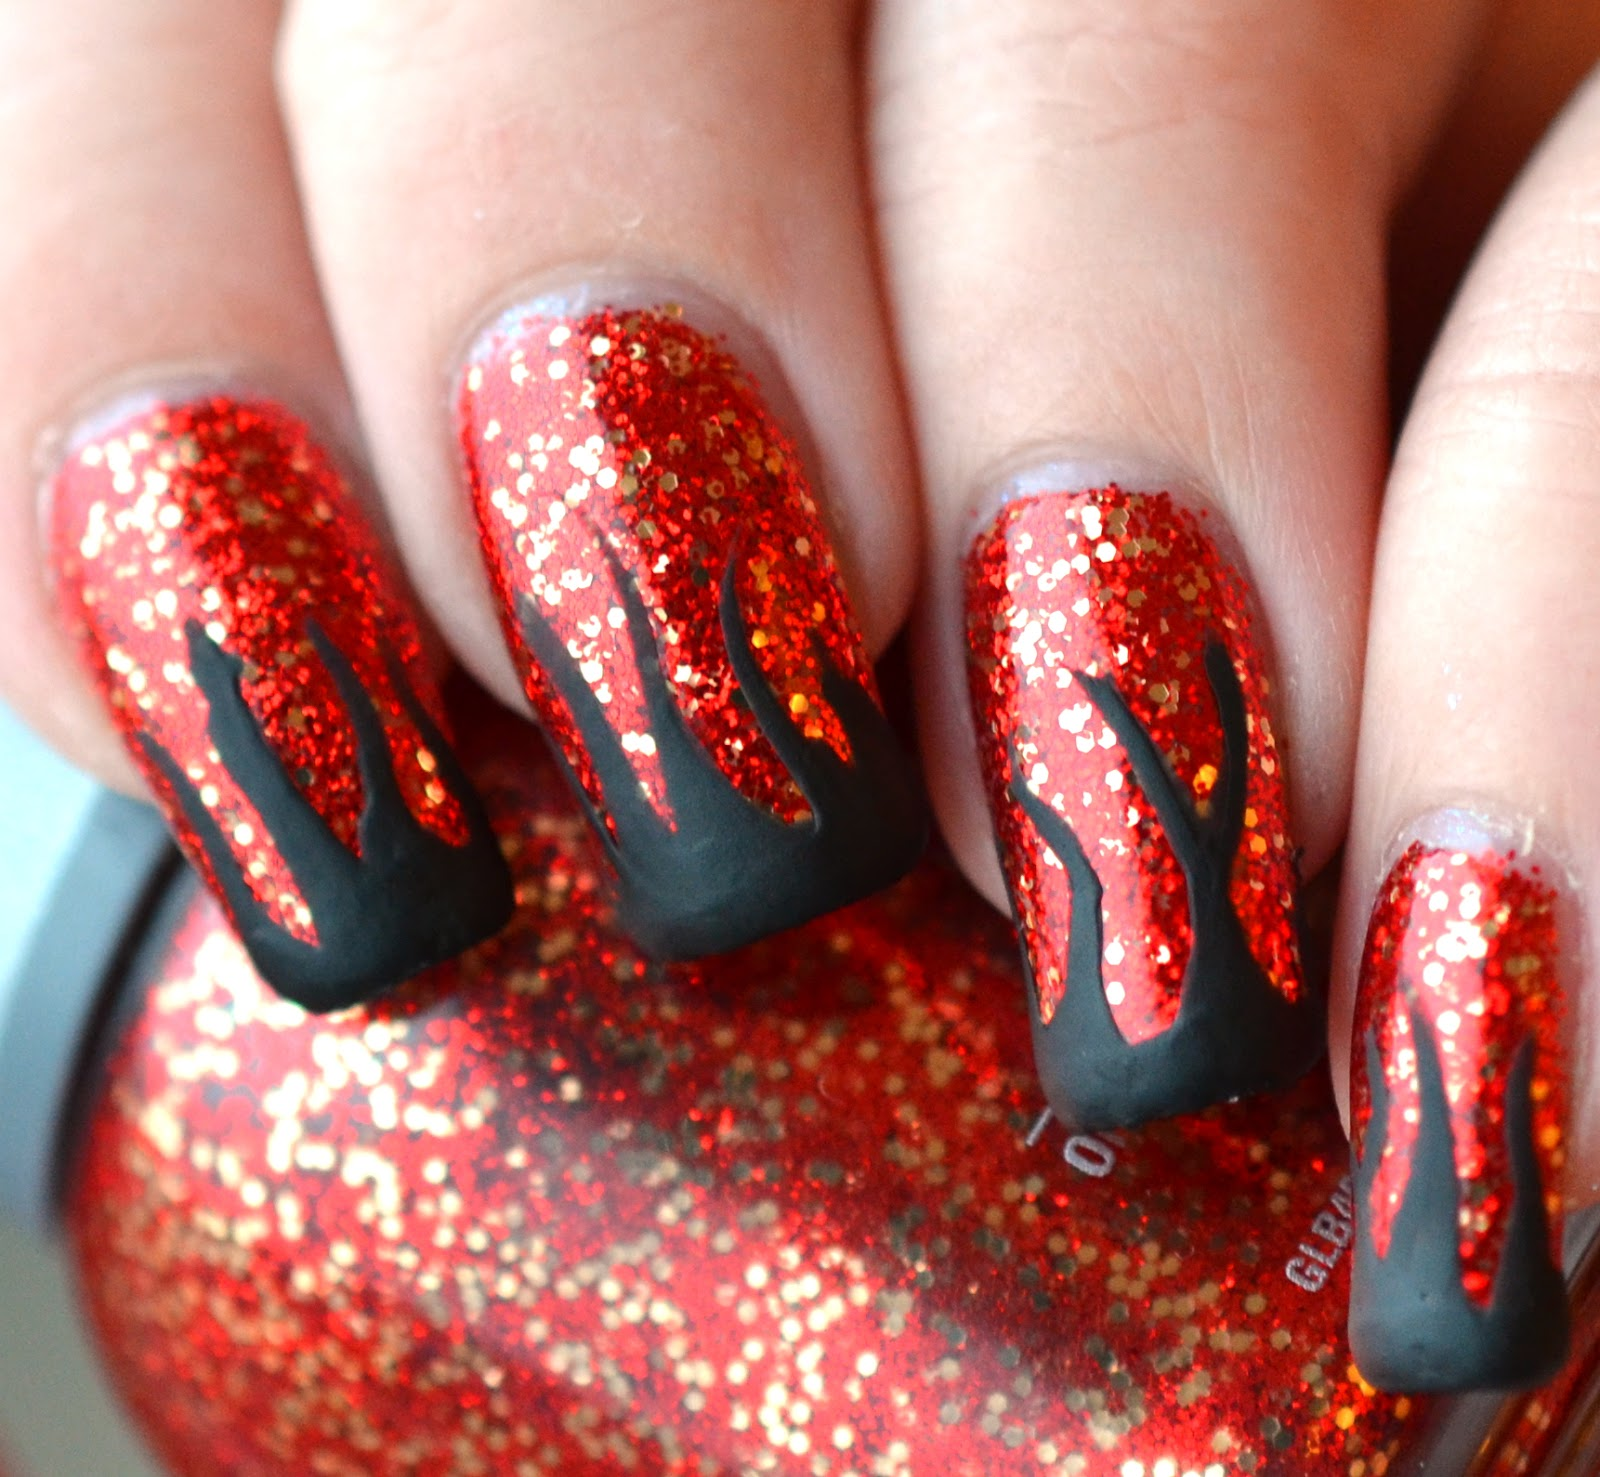 http://lenas-sofa.blogspot.de/2015/02/orly-naughty-or-nice-devil-may-care.html